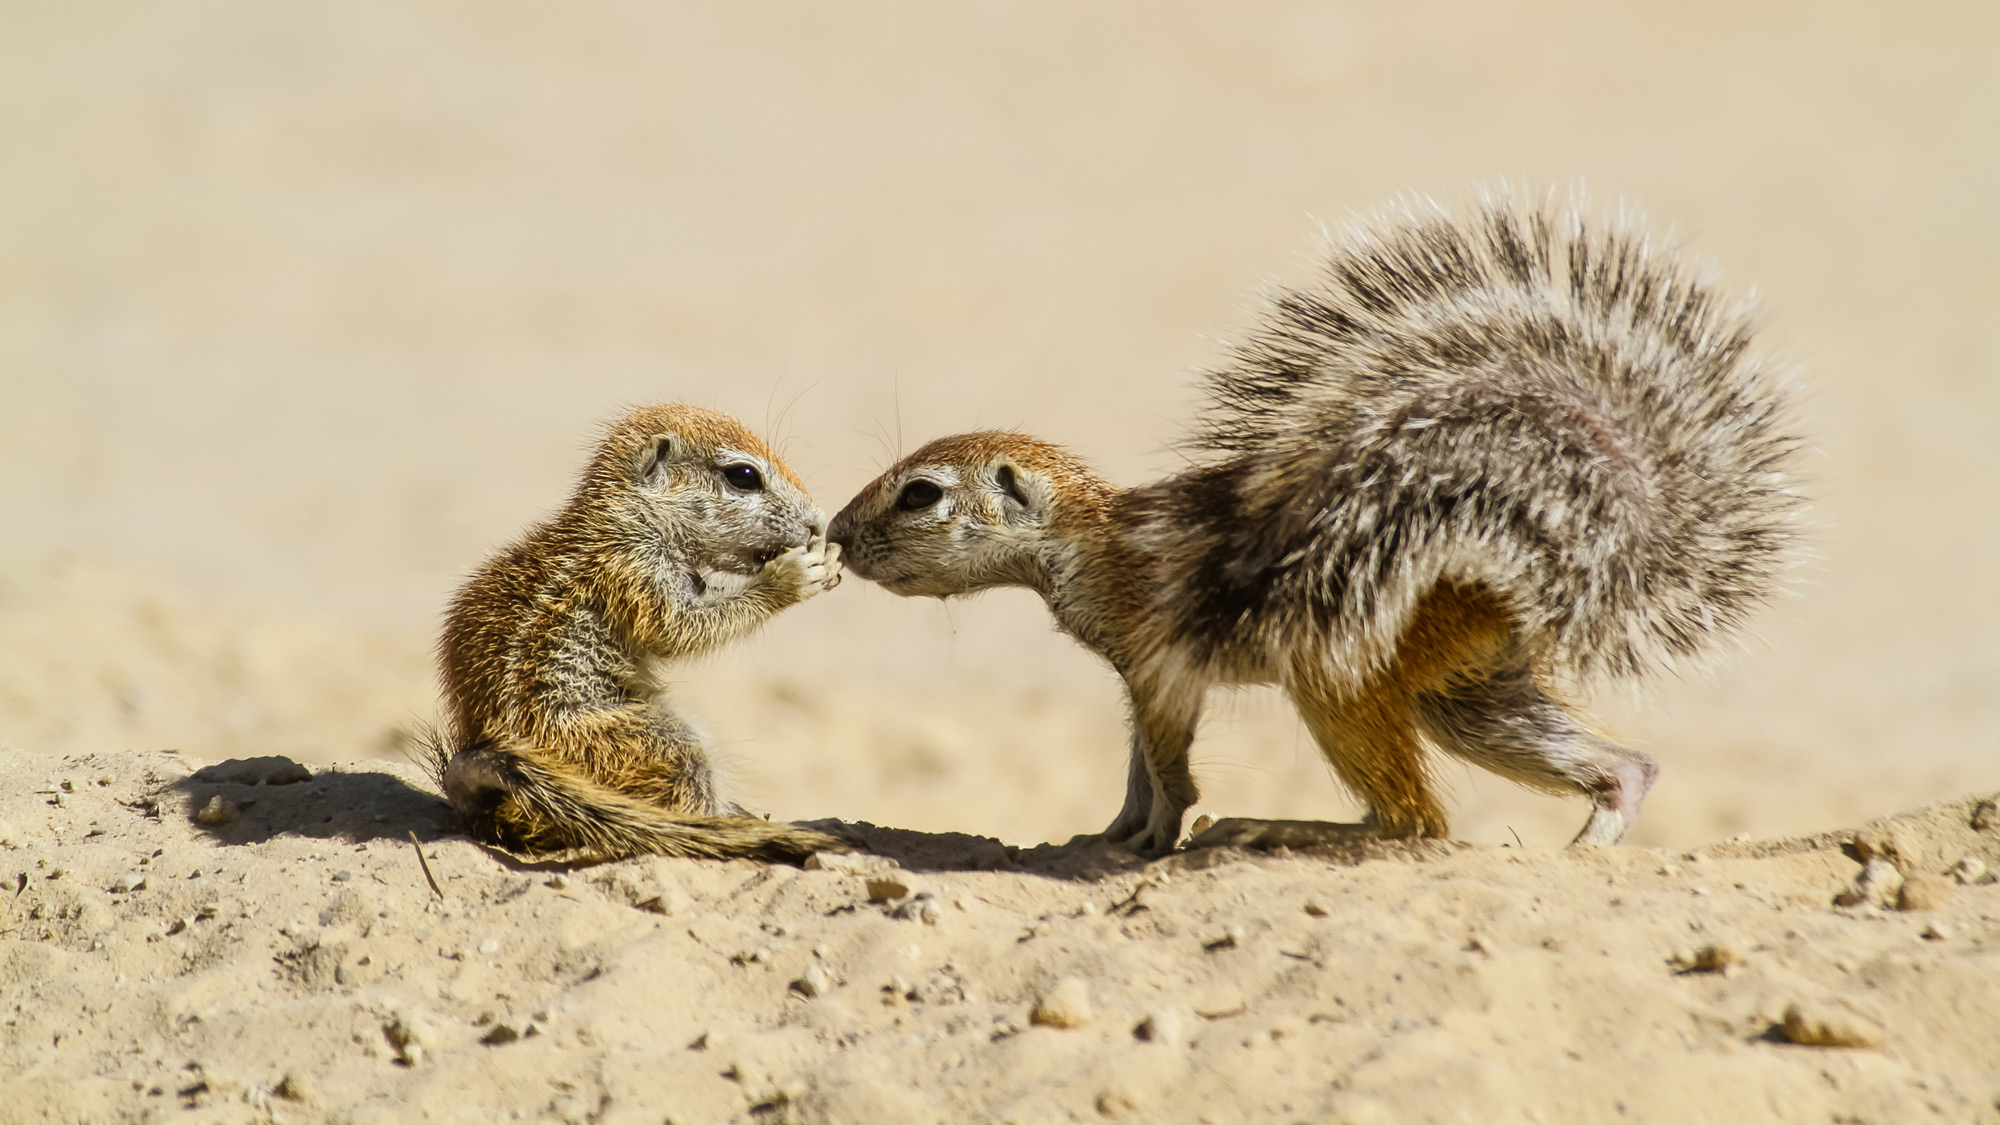 Two Cape ground squirrels 'kiss' in Kgalagadi Transfrontier Park, South Africa